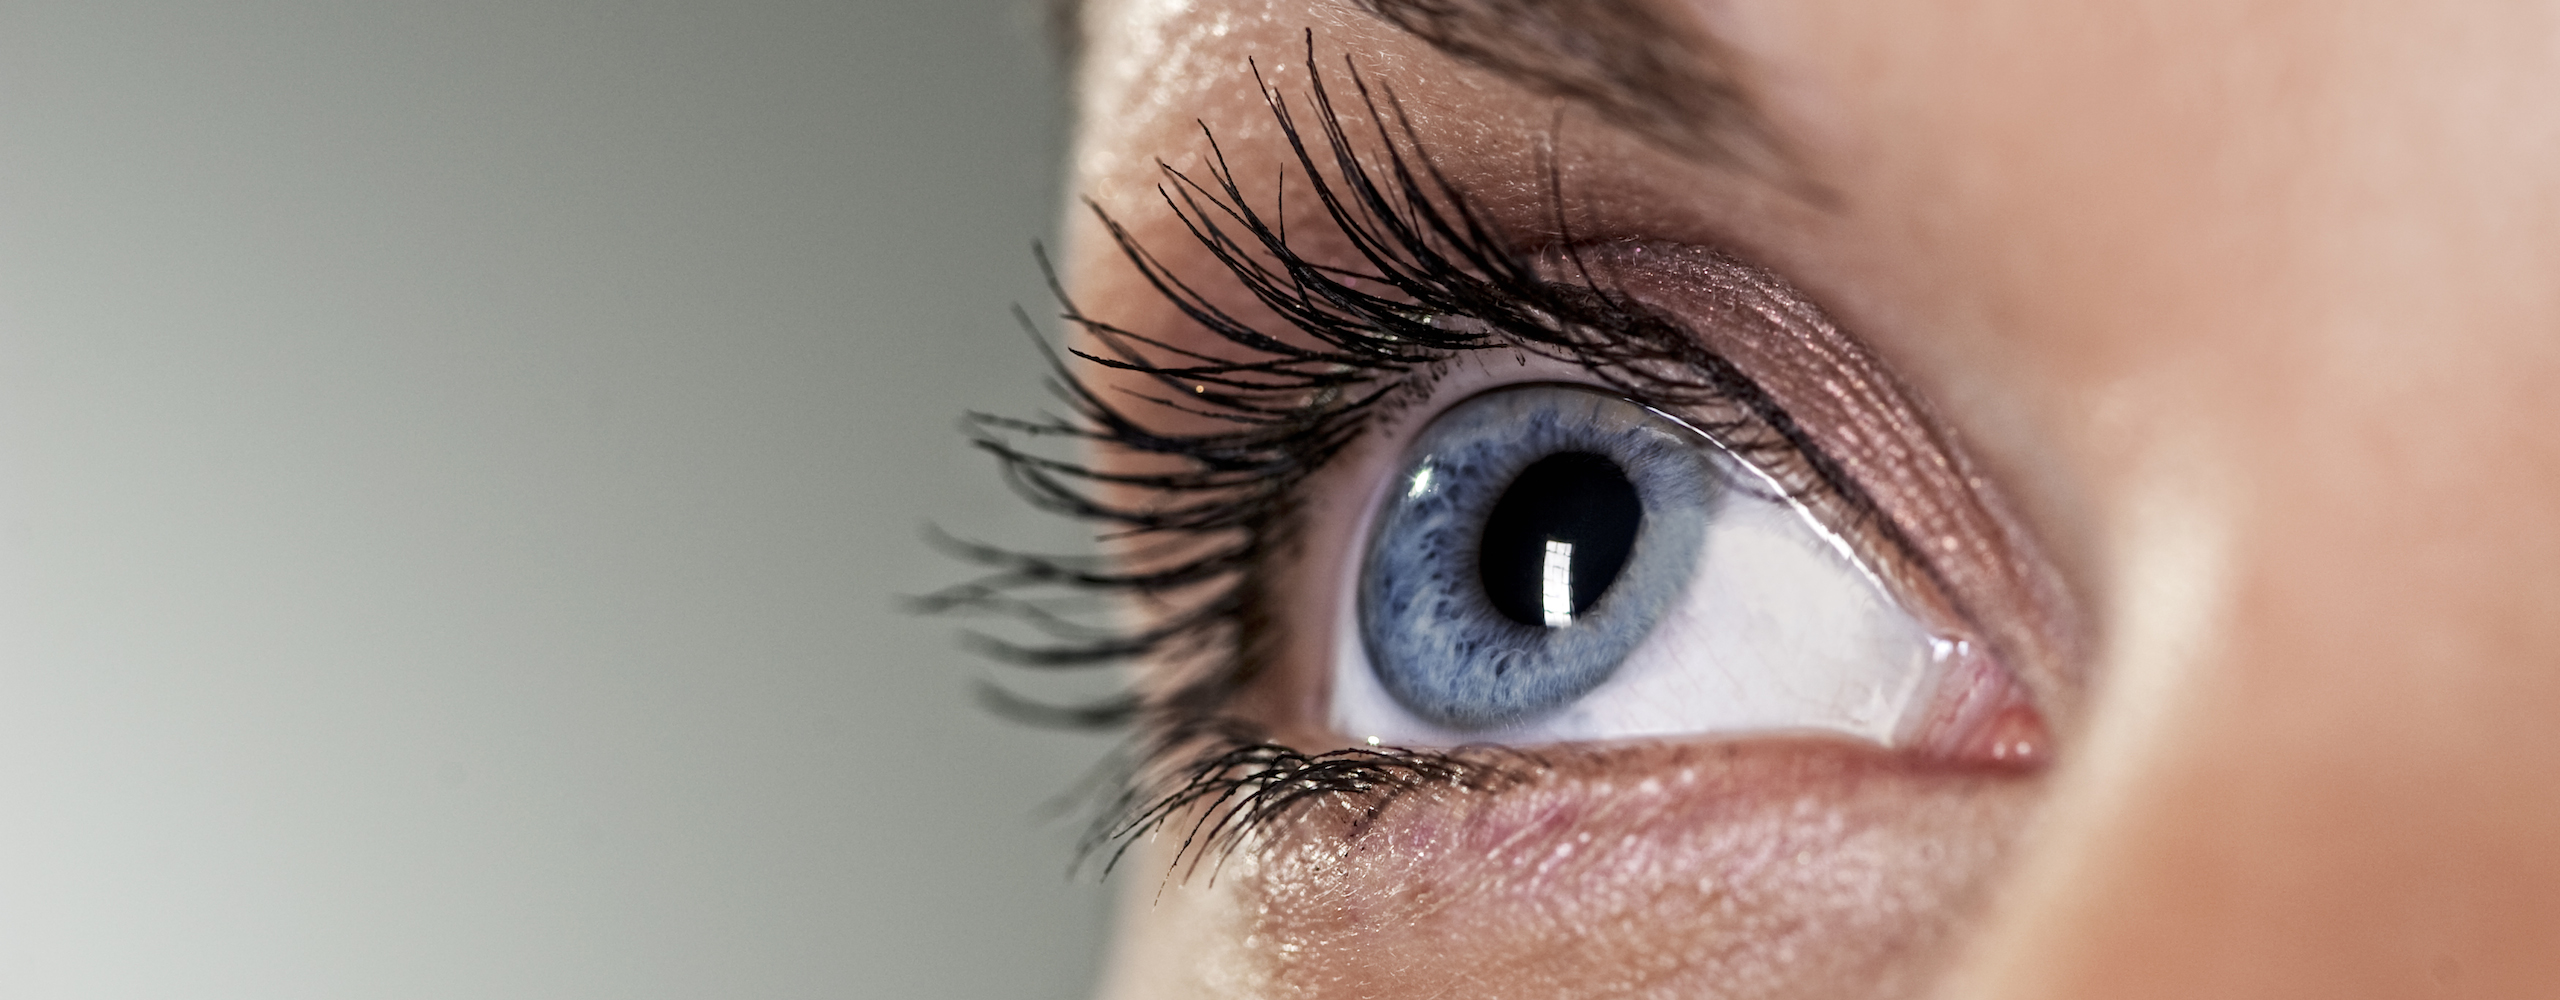 LASIK Eye Surgery In Kentucky